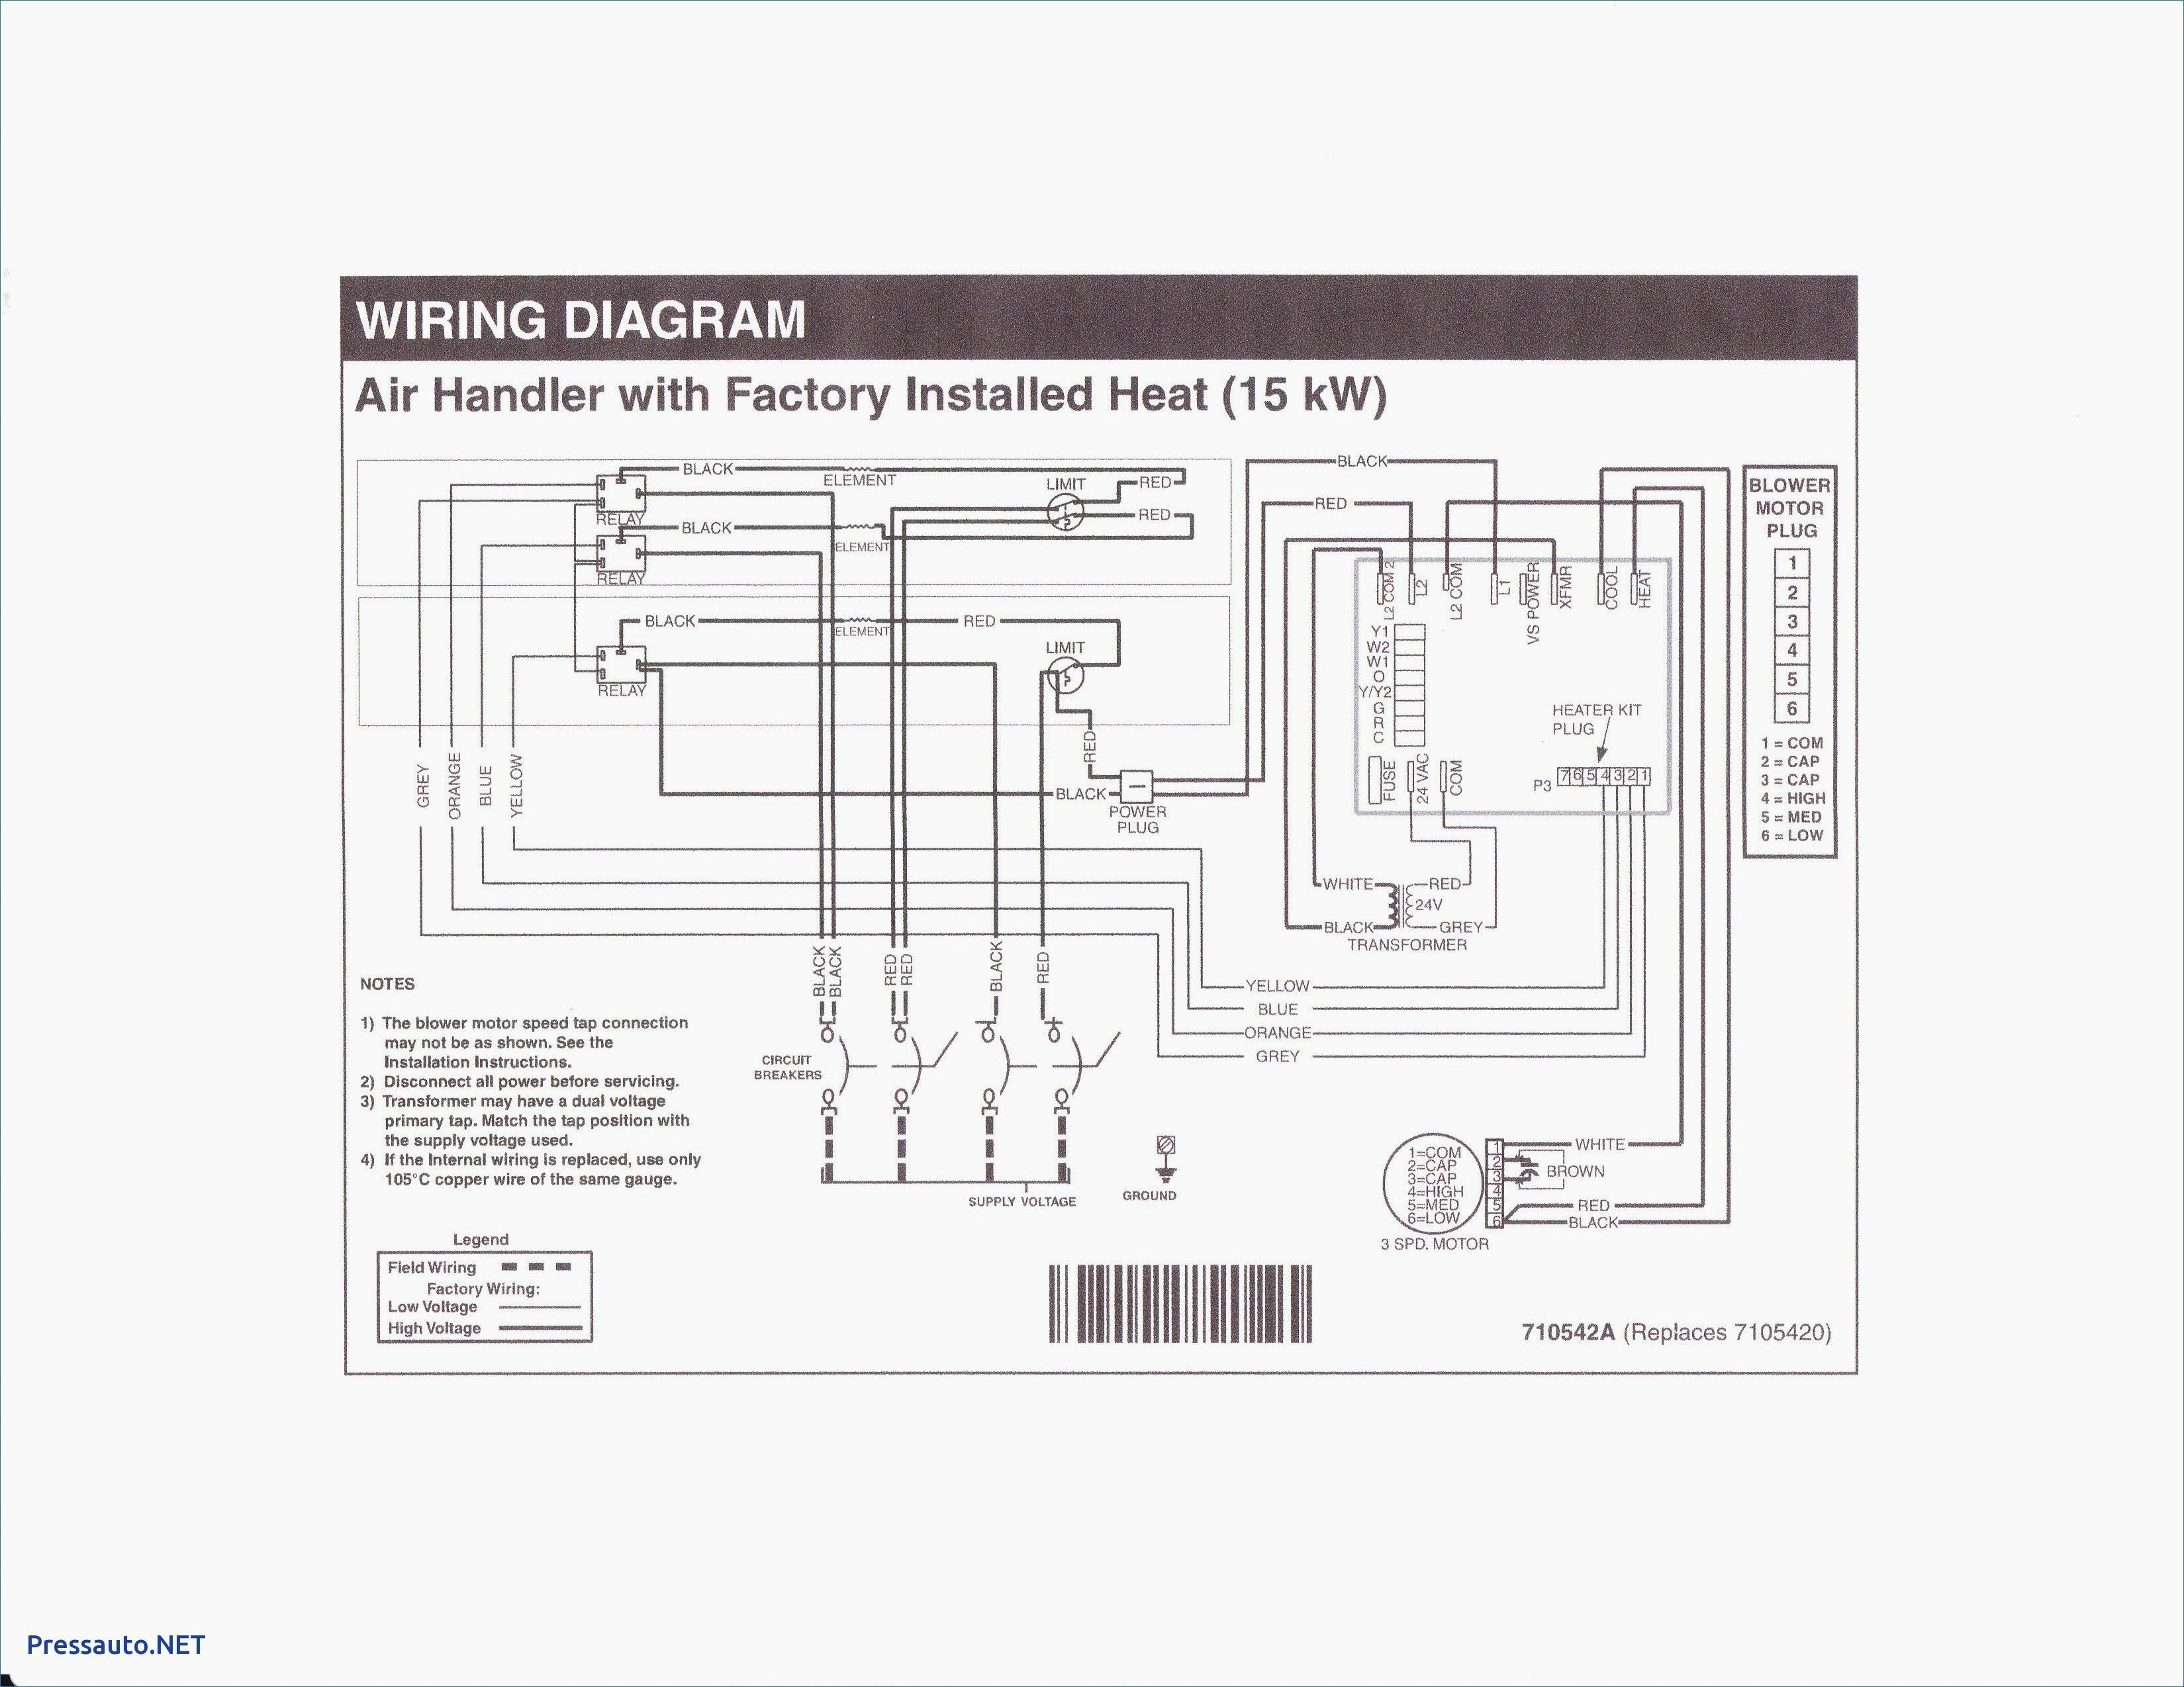 New Wiring Diagram For Nordyne Gas Furnace Diagram Diagramsample